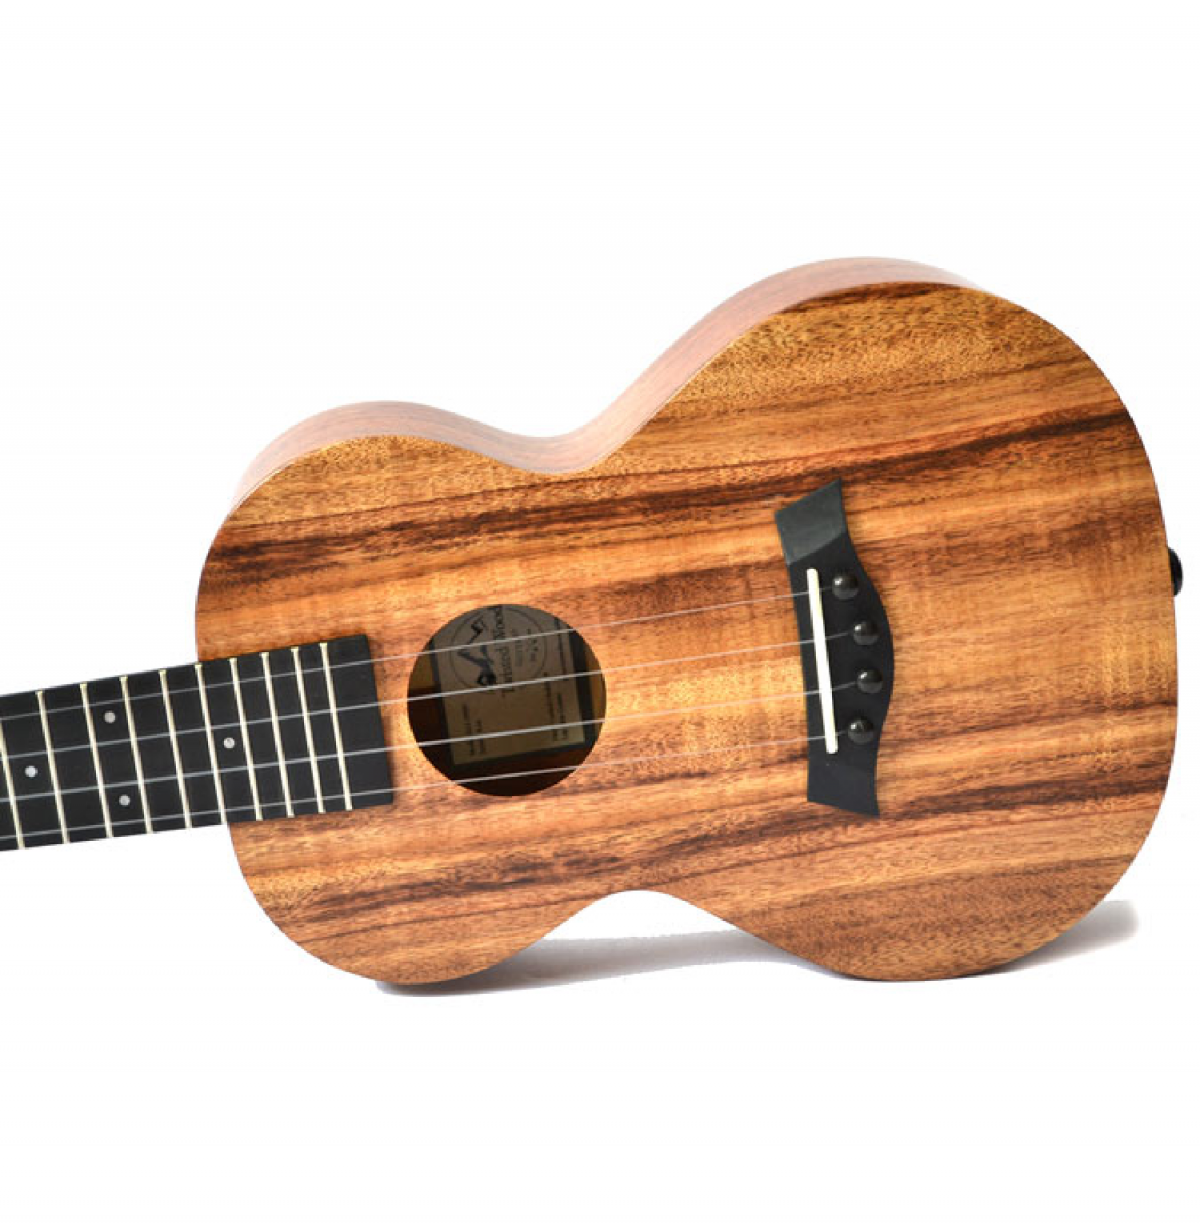 Twisted Wood Koa Ukulele - KO1000 side